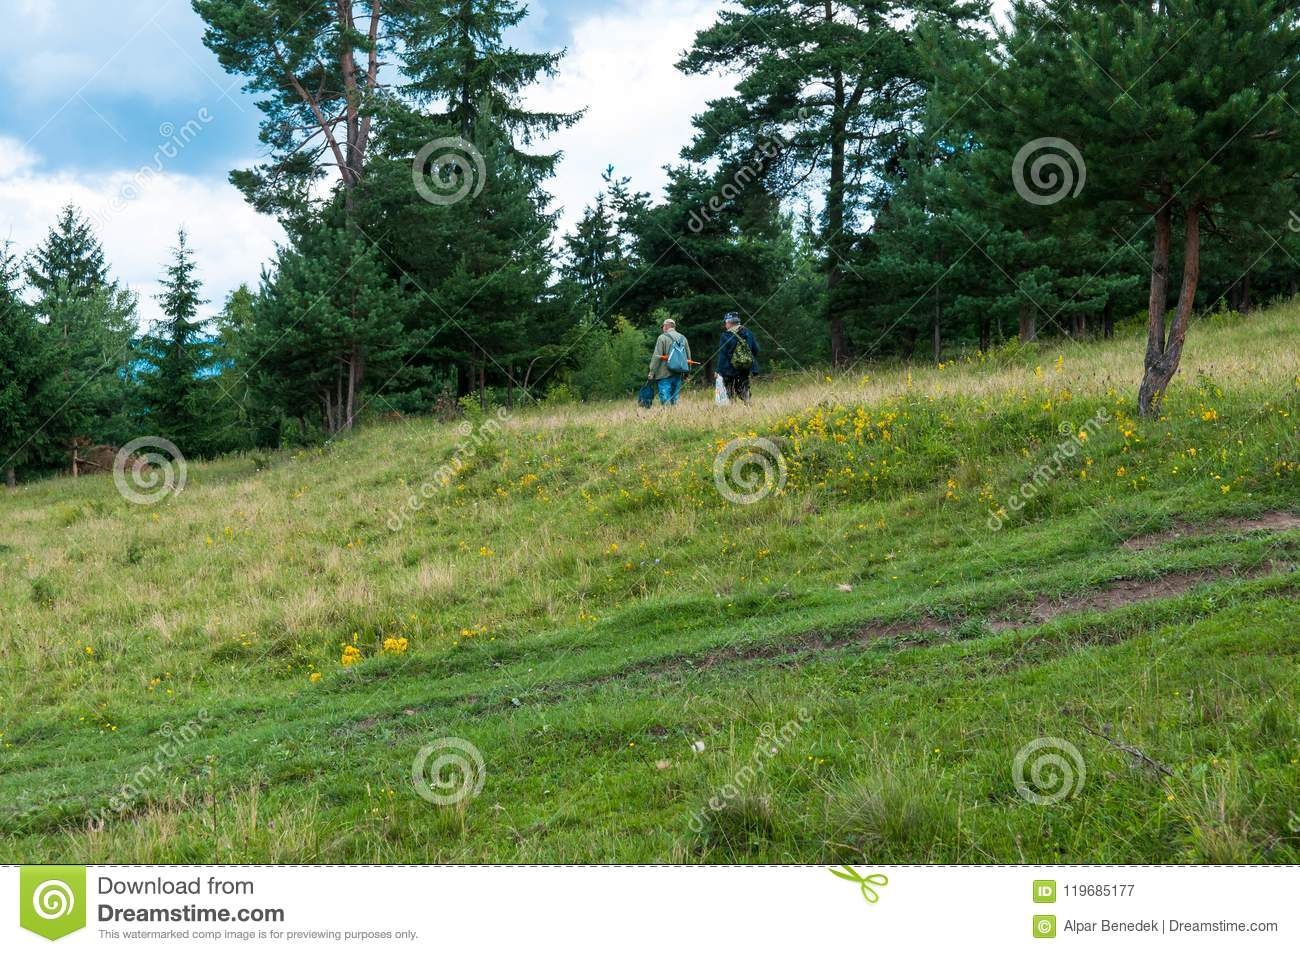 Unidentifiable elderly men searching for mushrooms near a pine forest.